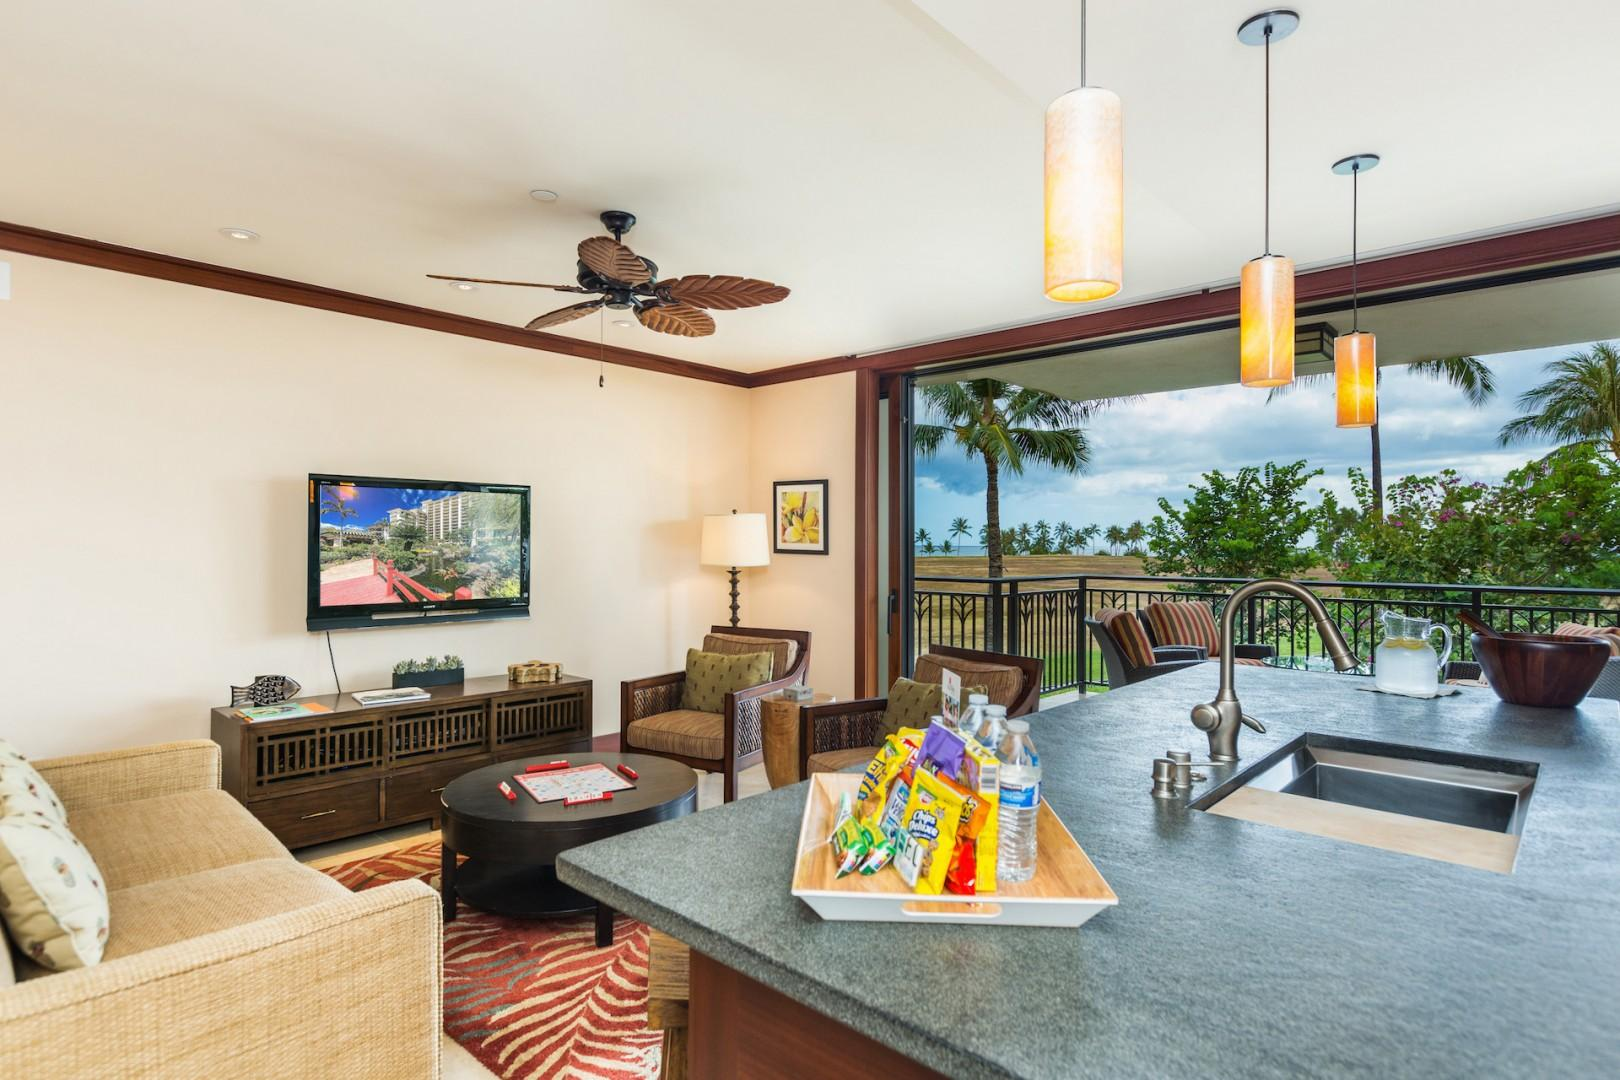 Beautiful garden and ocean views from the kitchen, living and dining areas.